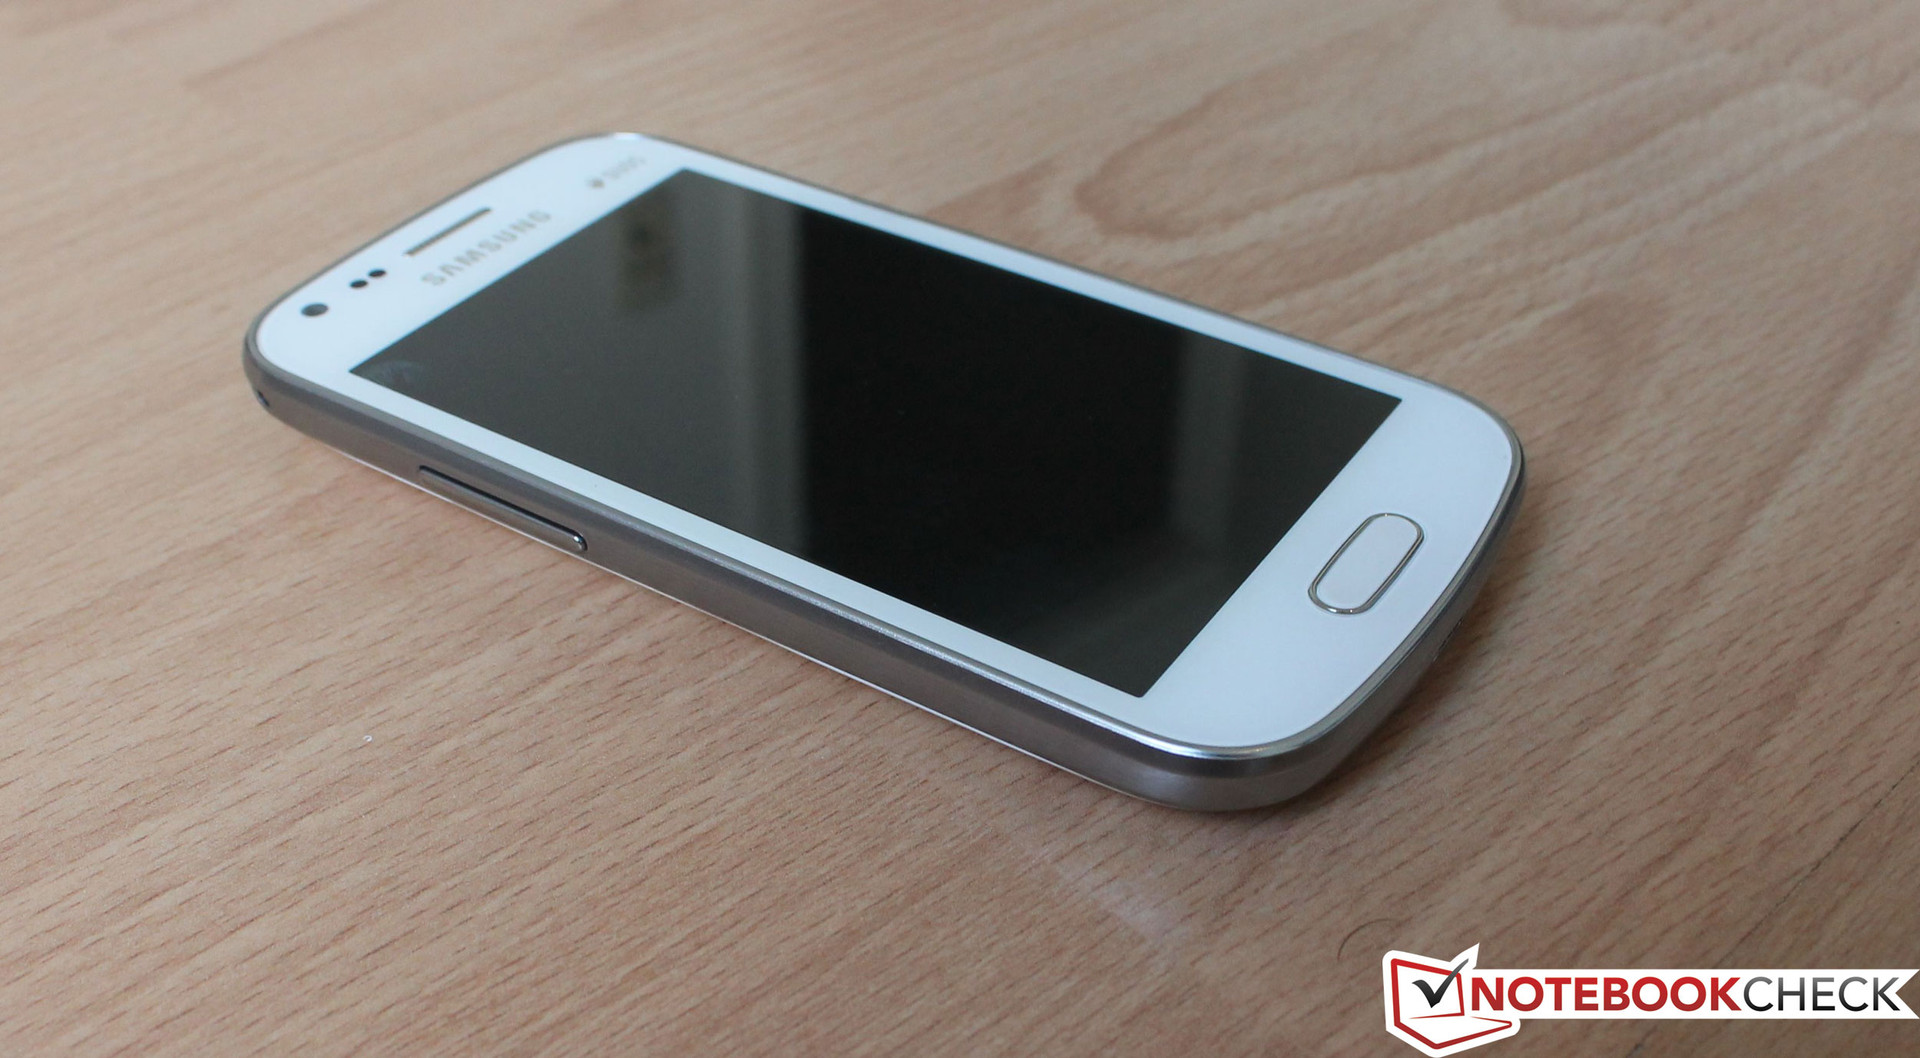 Samsung galaxy s duos s7562 full phone specifications - 4 Inch Tft Screen